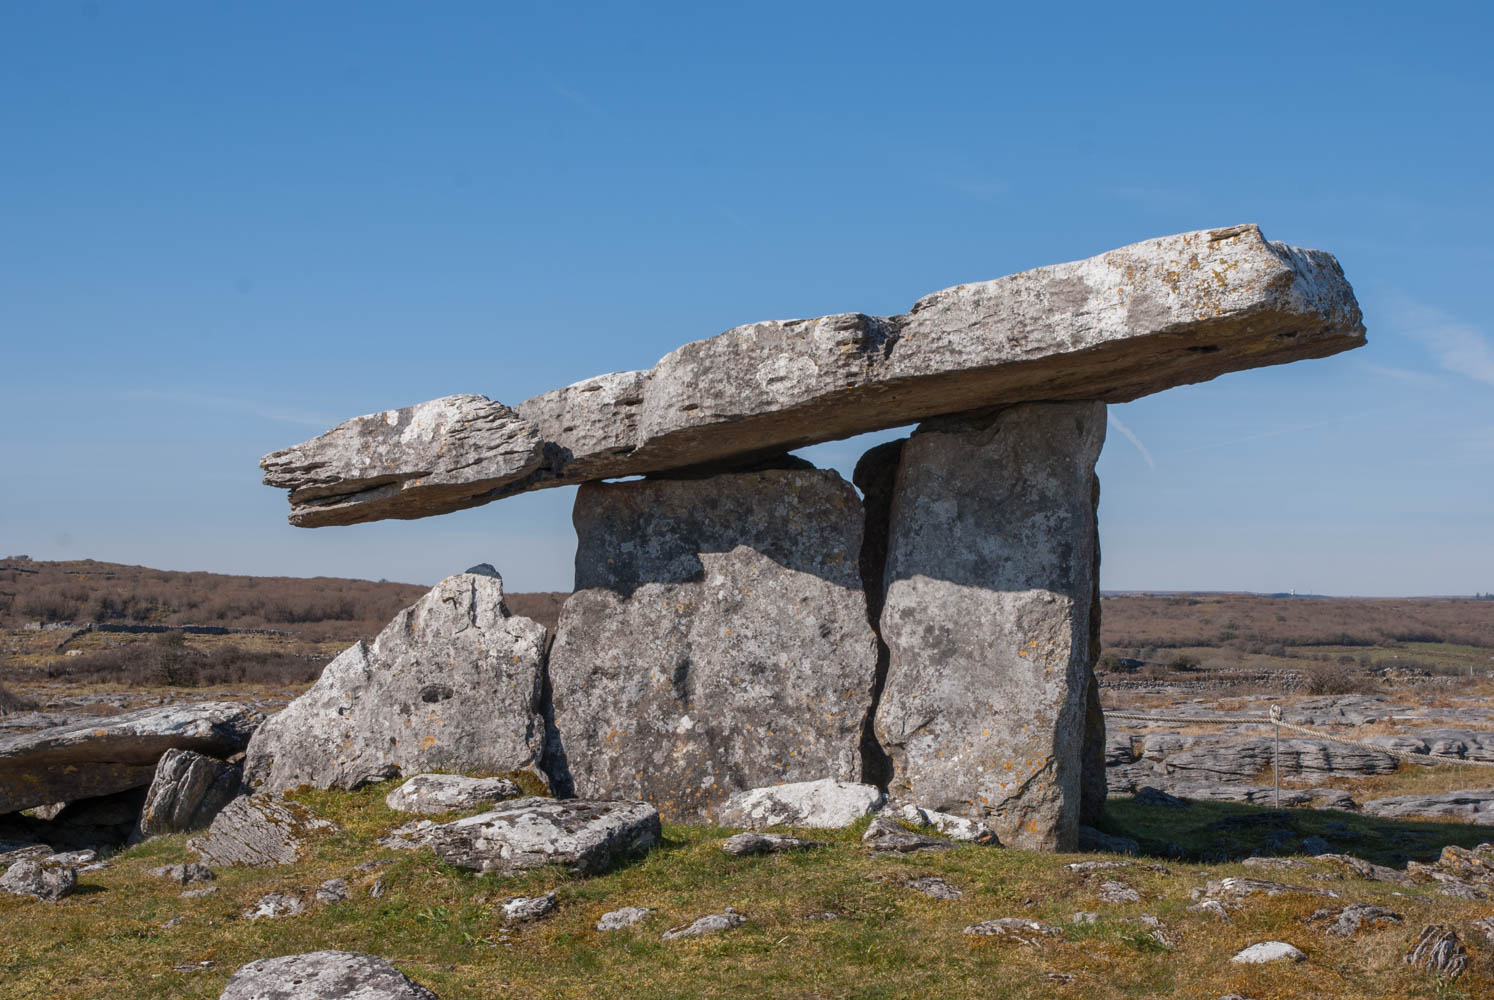 Poulnabrone Dolmen in the Burren, Ireland. A neolithic portal tomb dating to 3000 to 4000 BC